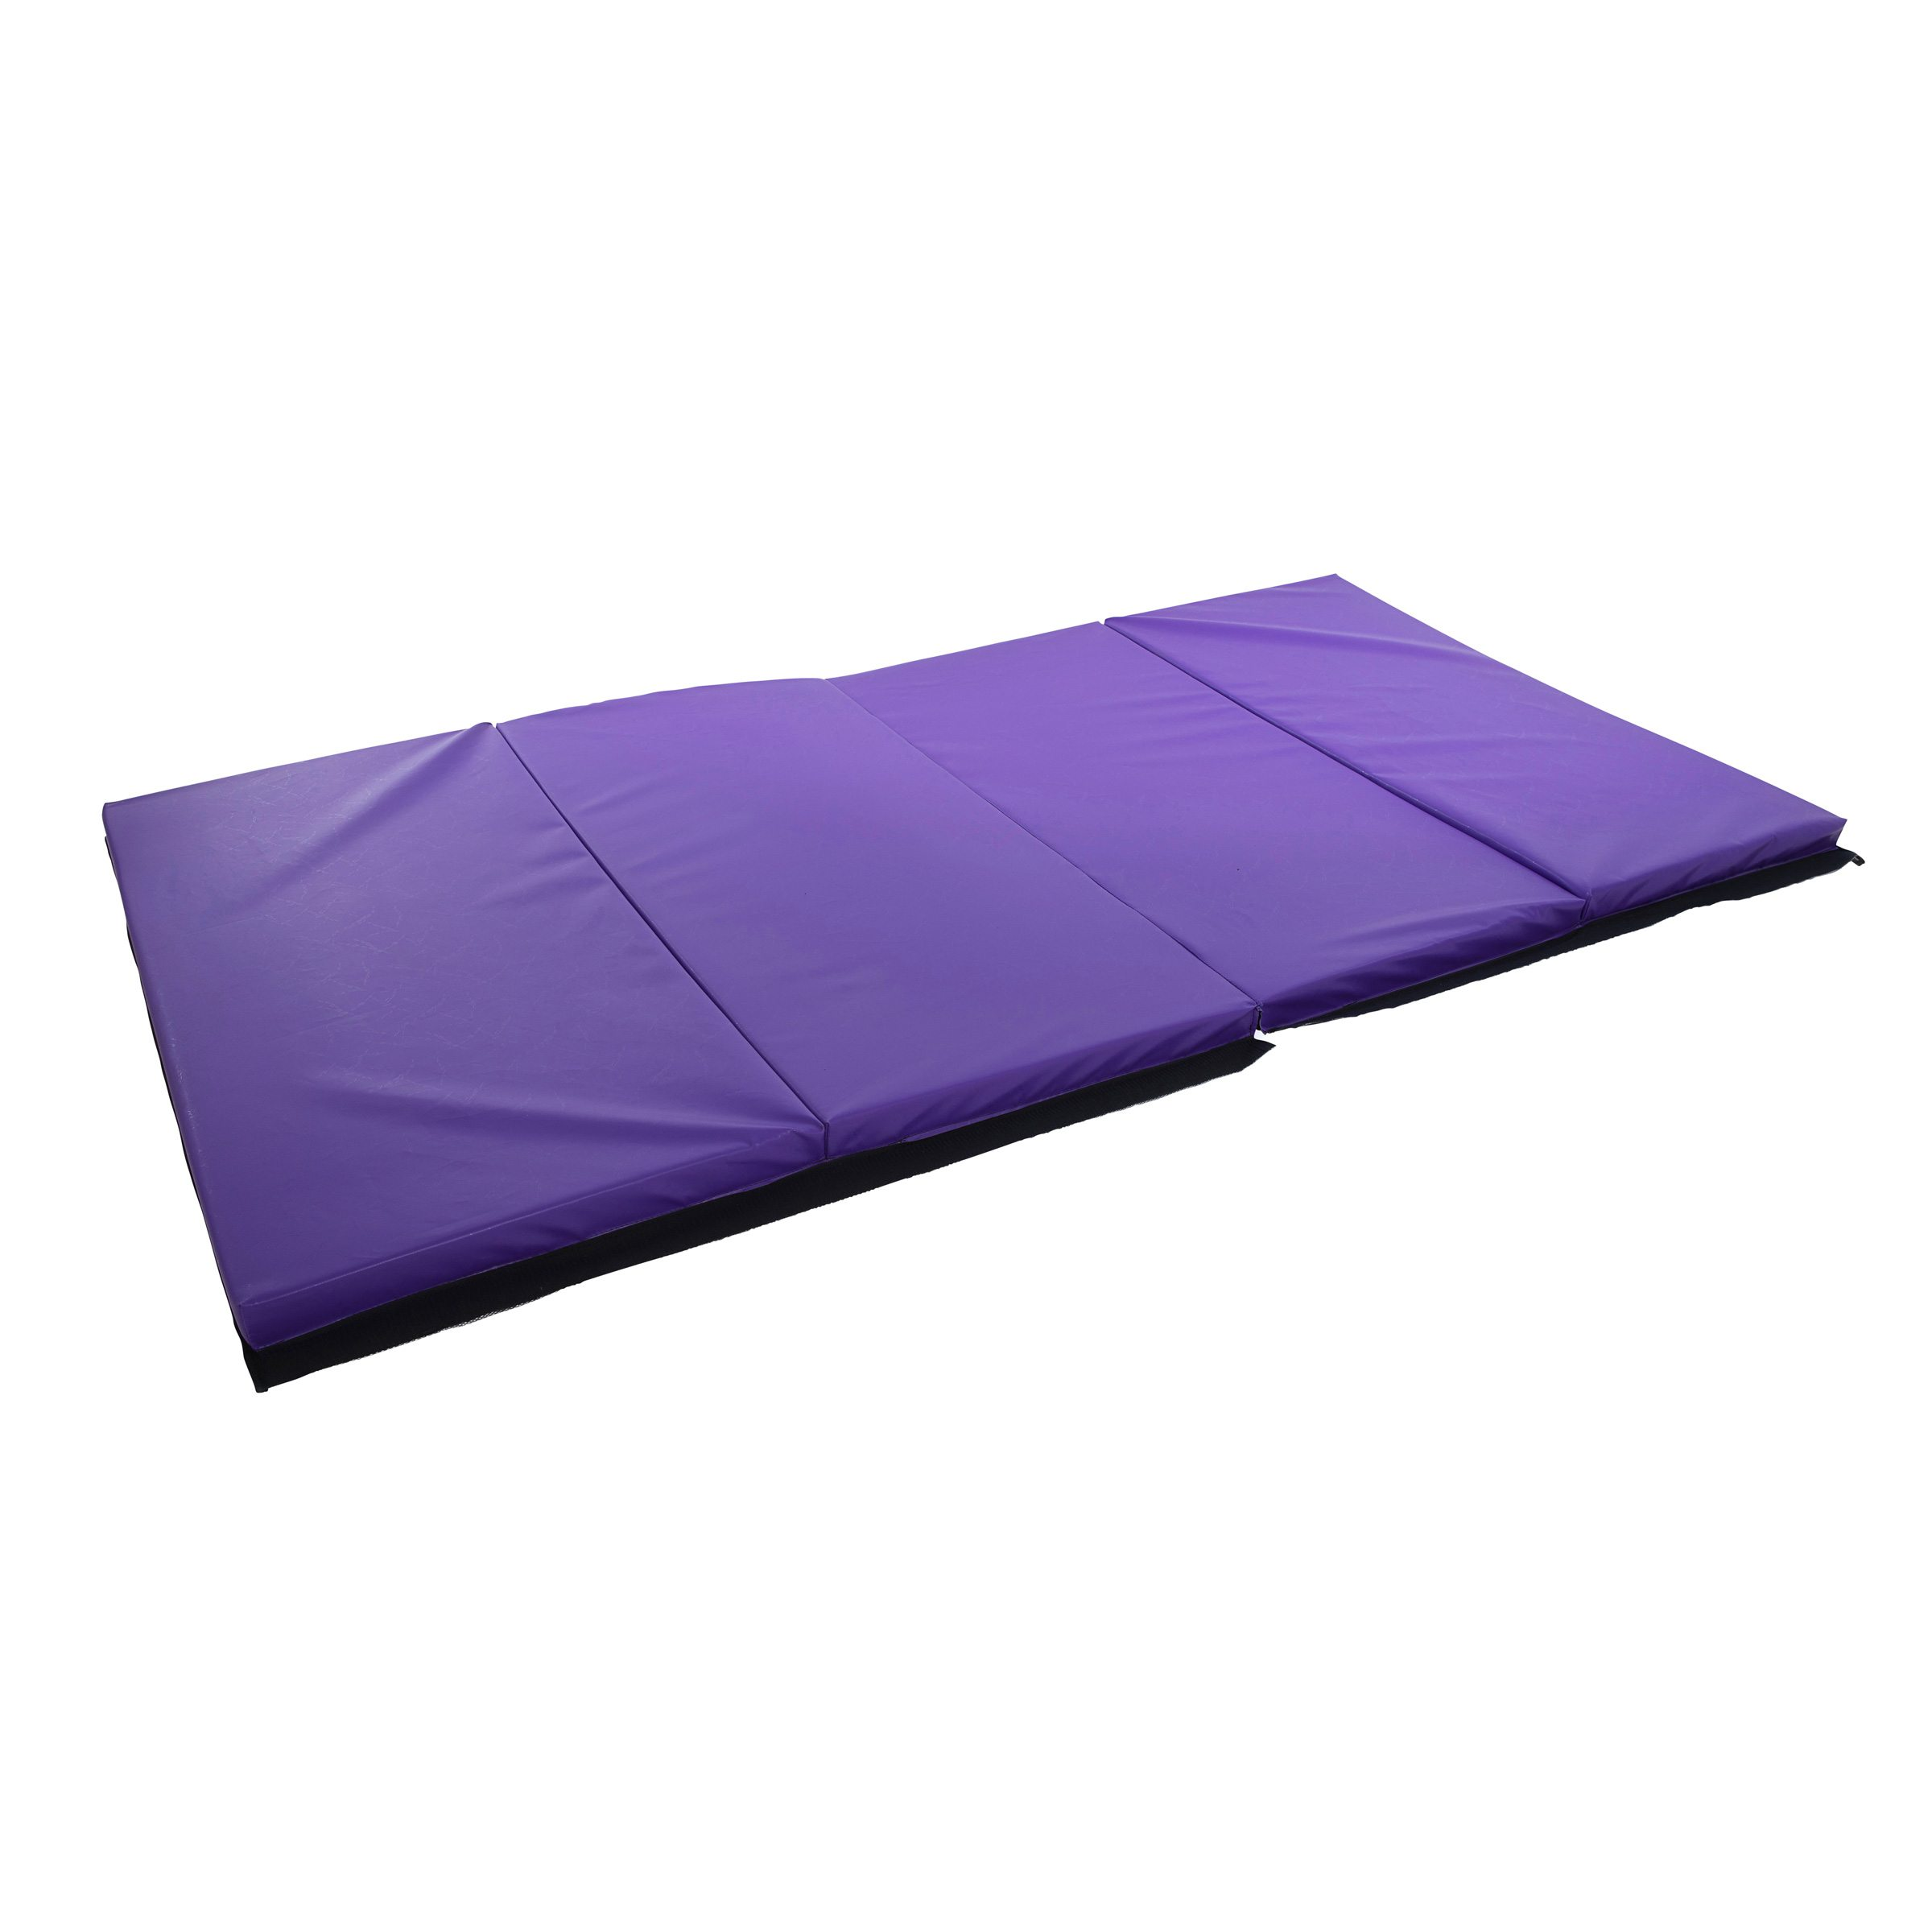 home purpose exercise gym general x athletic gymnastic athletics mat two days goods thick gymnastics sporting for purple panel presell folding fitness equipment mats